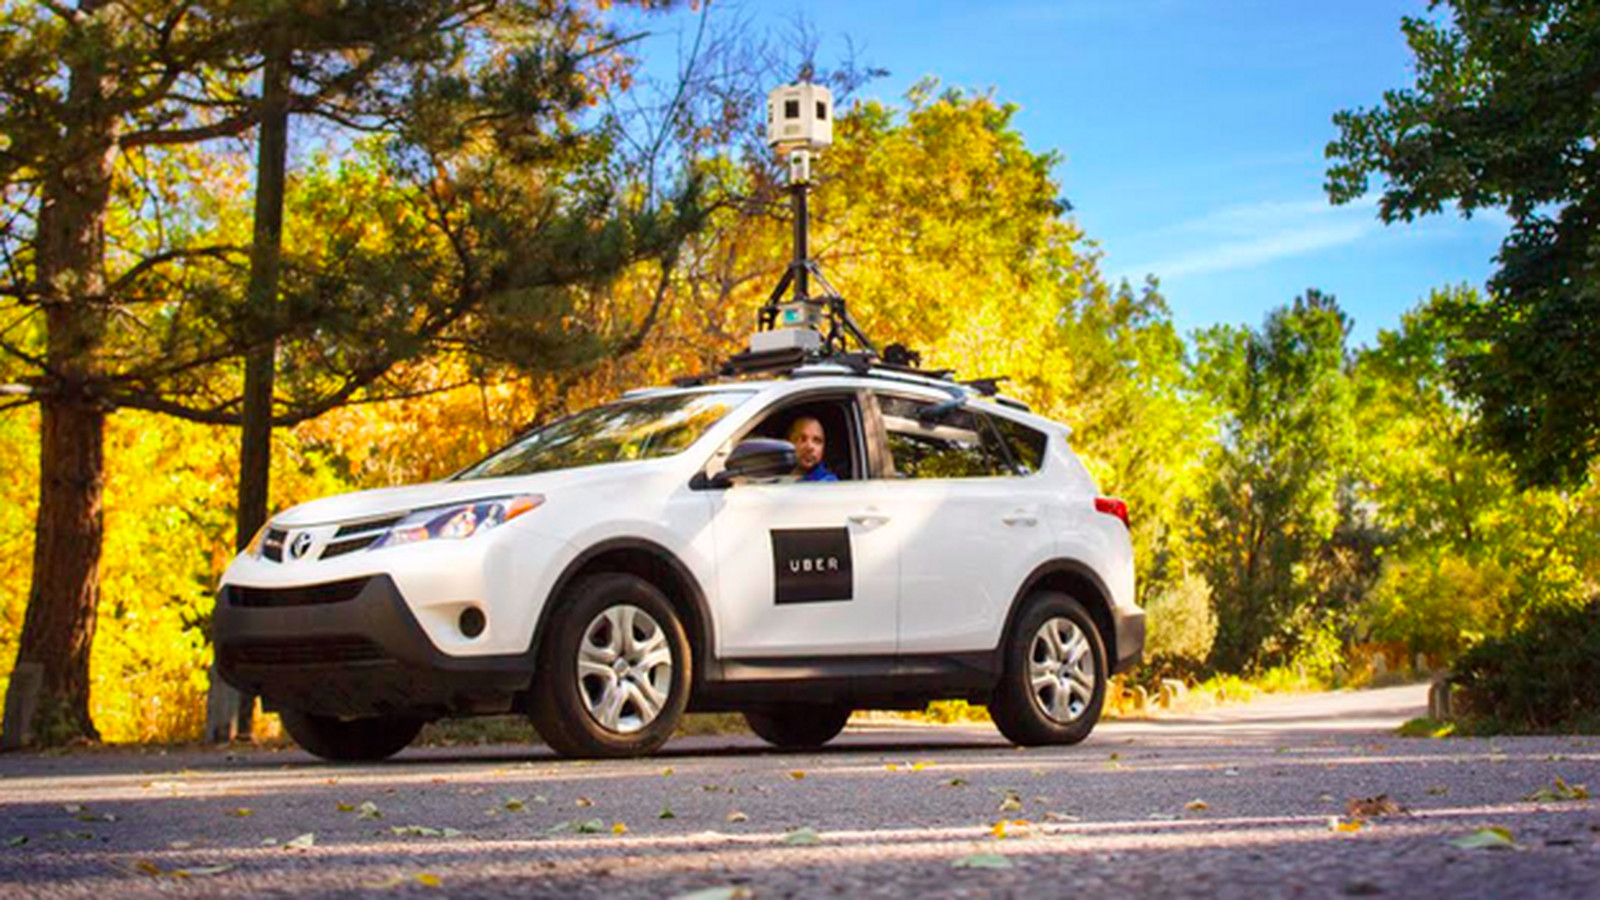 uber is using microsoft 39 s old fleet of bing cars to improve its maps data the verge. Black Bedroom Furniture Sets. Home Design Ideas